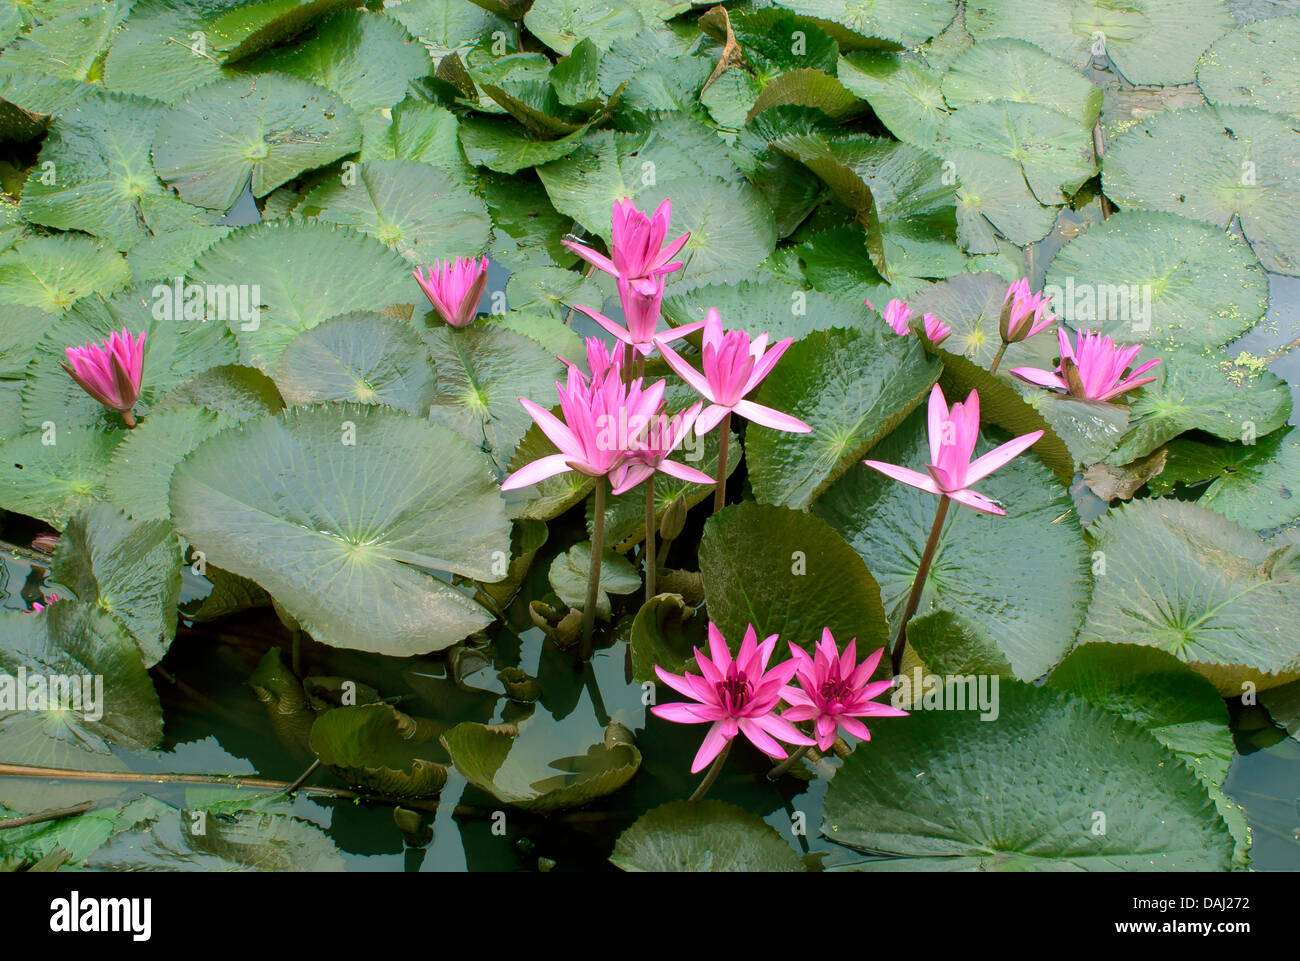 Image Of A Lotus Flower On The Water Flowers Blooming Nature Stock